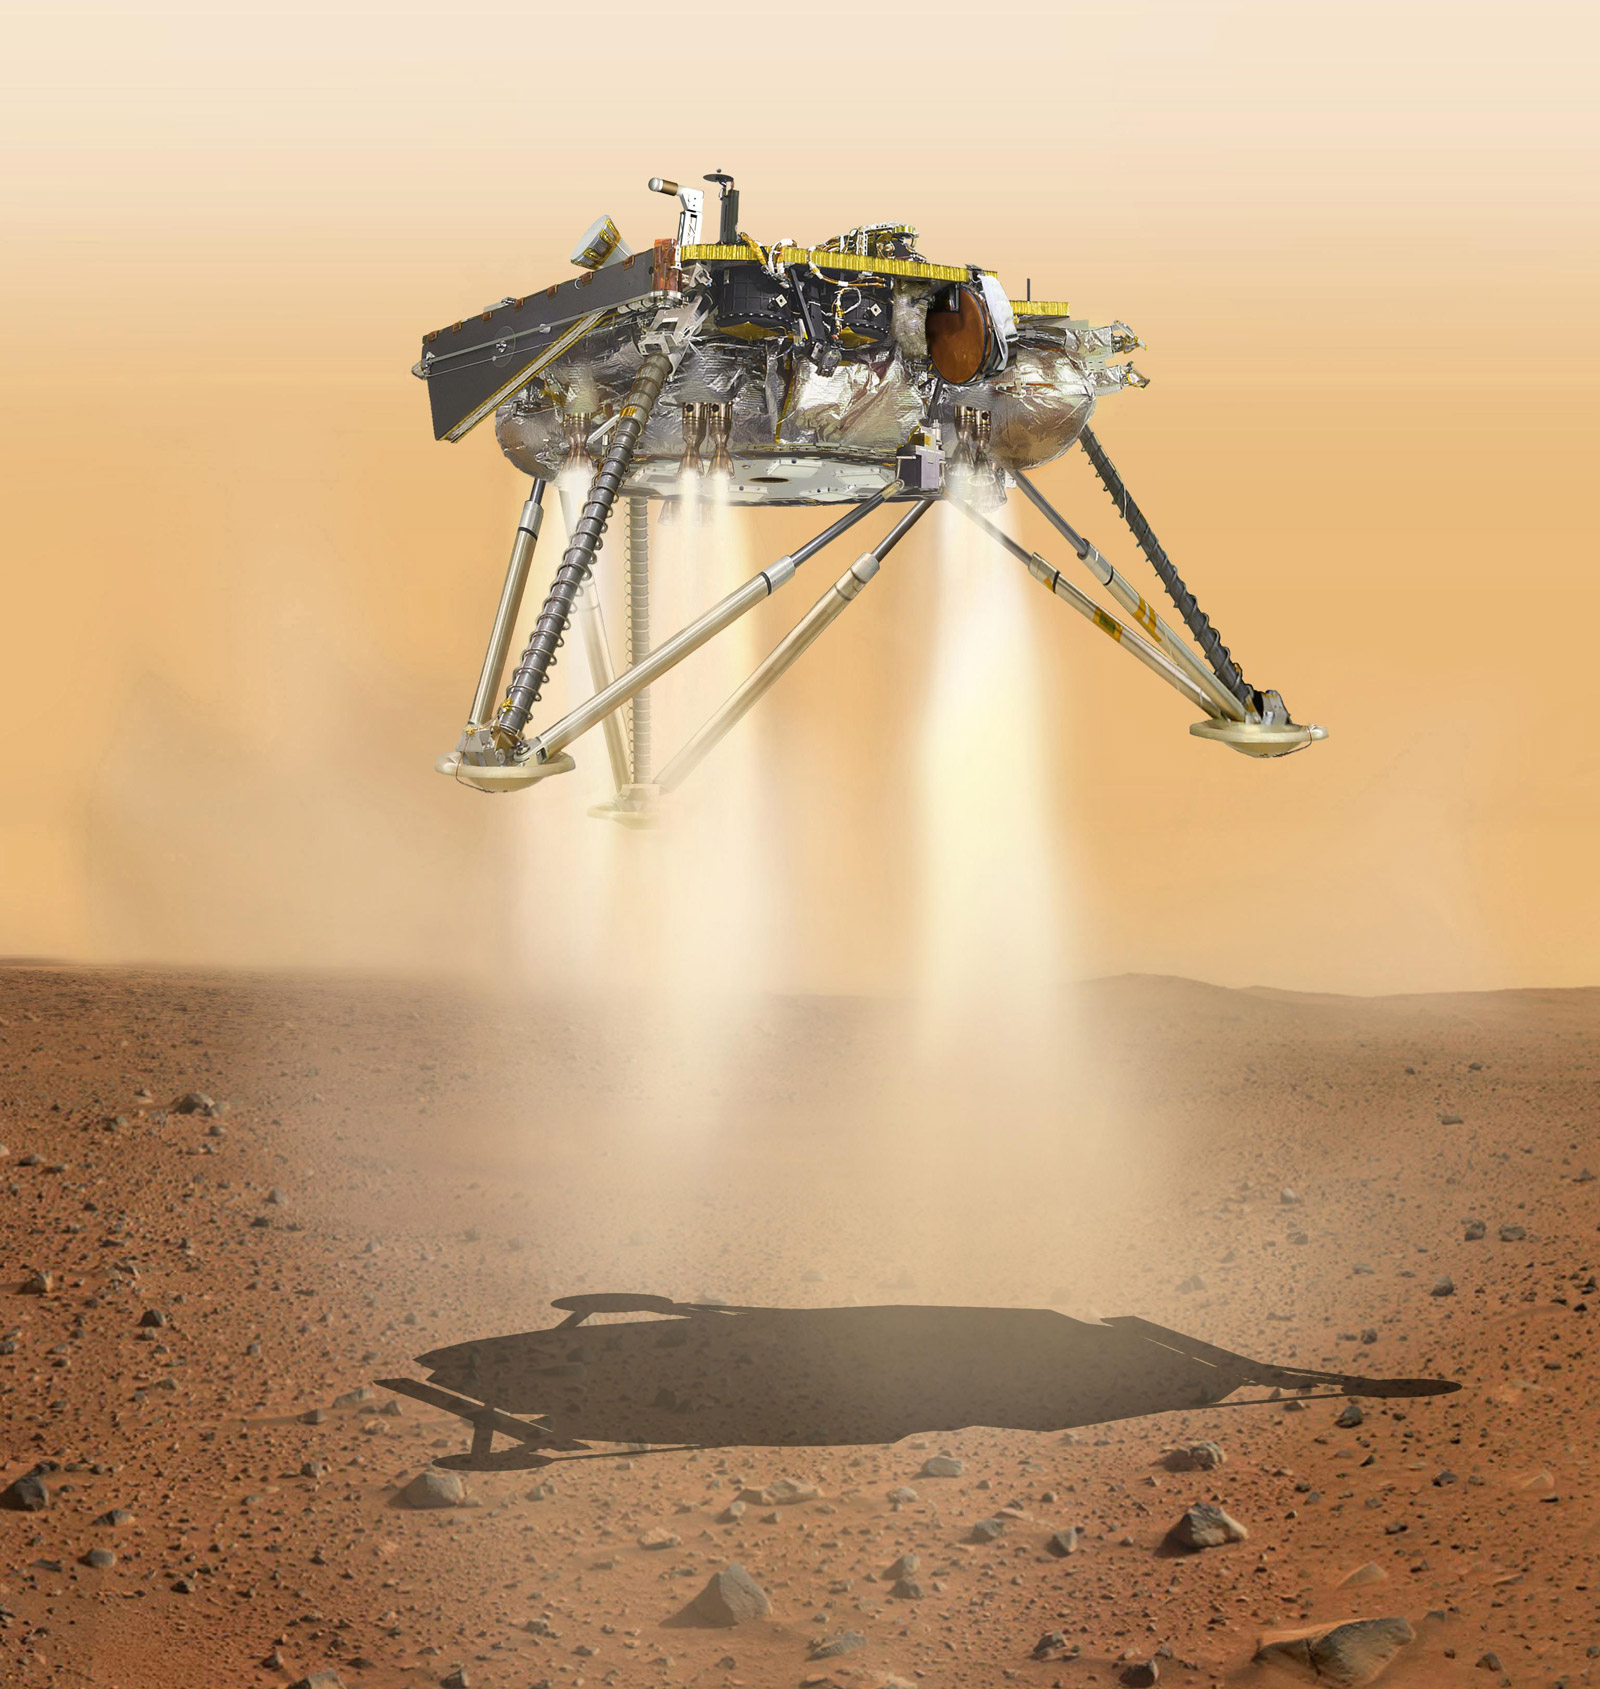 Became known, when a NASA probe landed on Mars